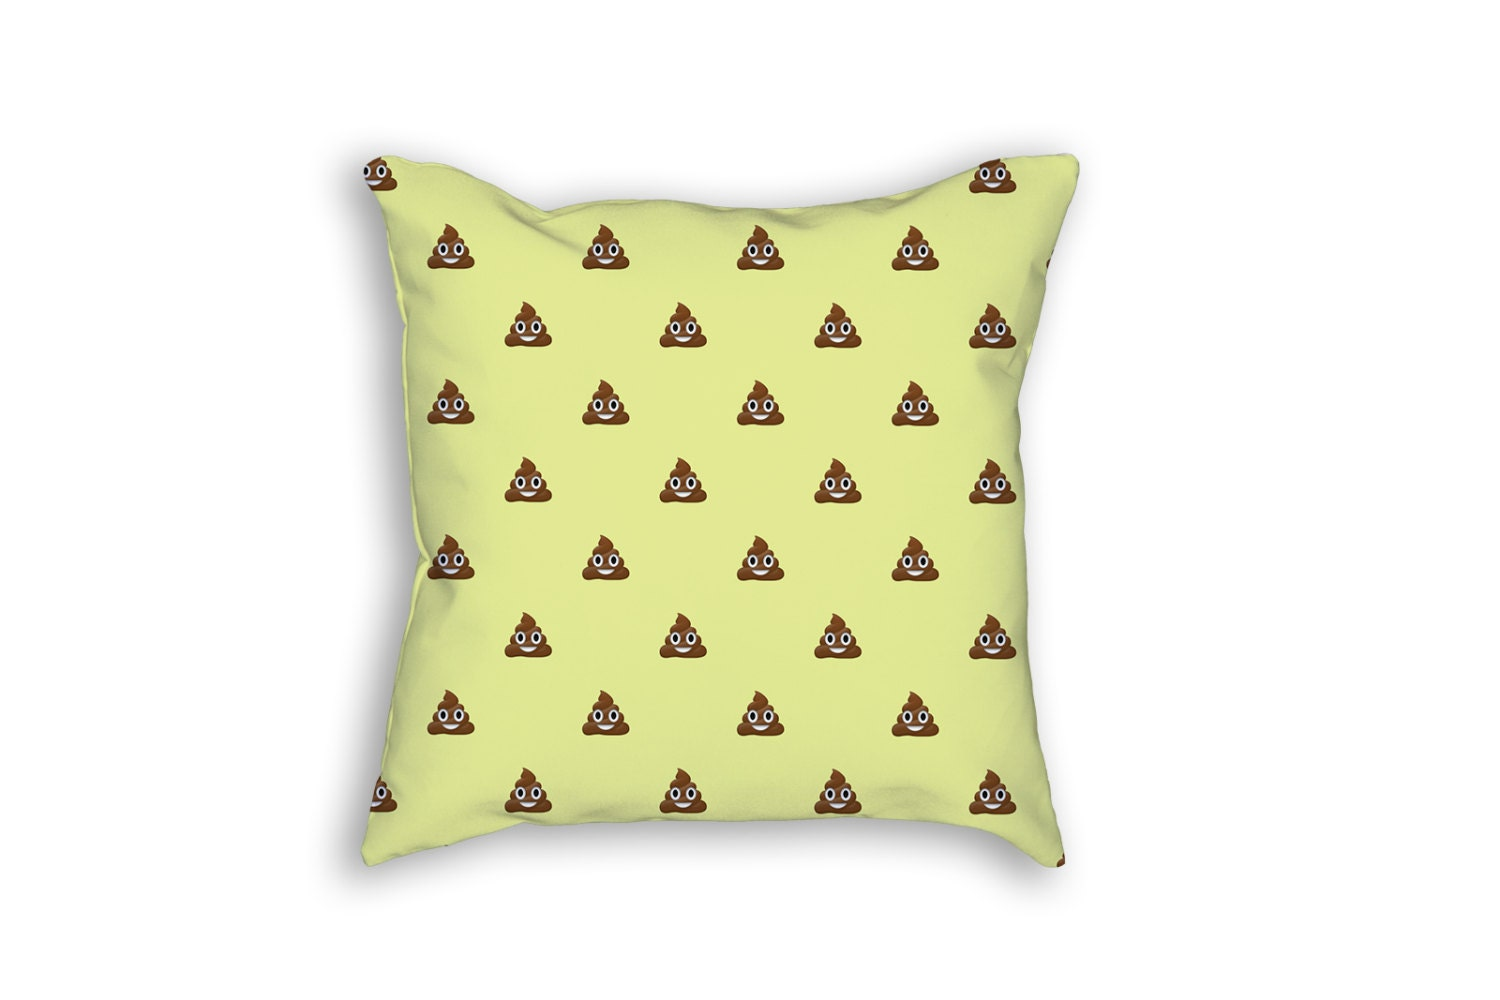 Poop Emoji Throw Pillow : Emoji Poop Pillow by BlackBonePress on Etsy